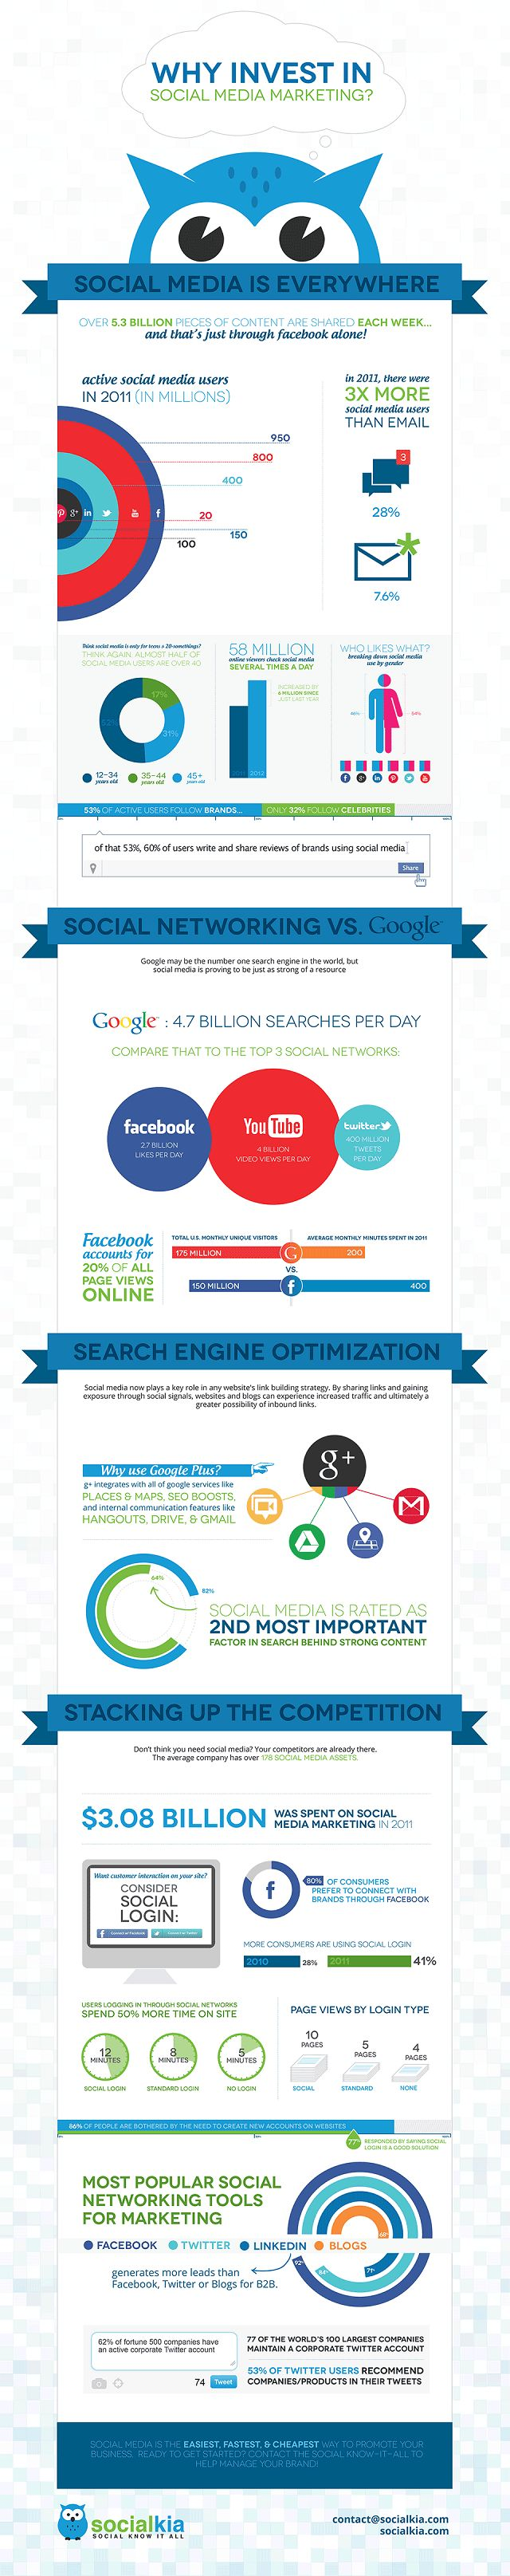 Why Social Media is Best Bet to Promote your Business [INFOGRAPHIC]